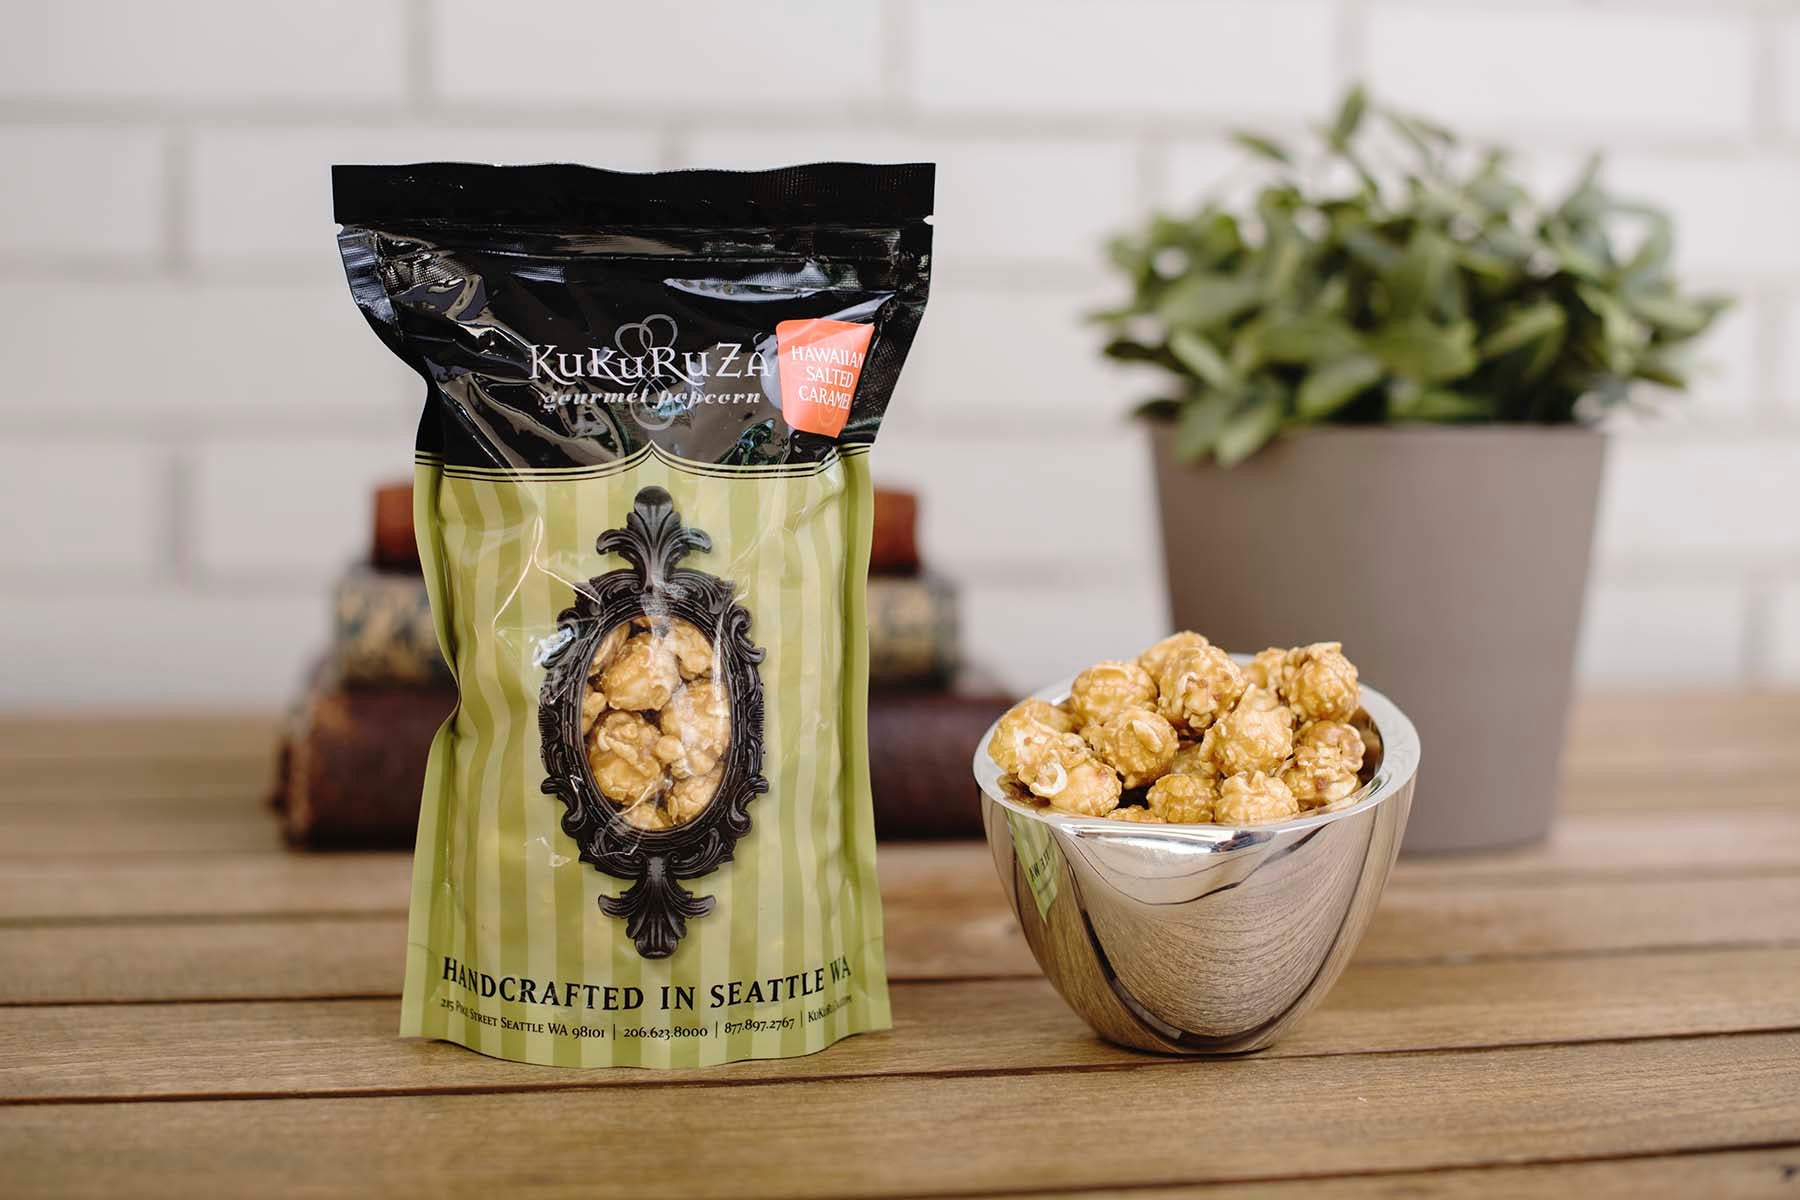 <b>KuKuRuZa Gourmet Hawaiian Salted Caramel</b><br>This is KuKuRuZa's best selling popcorn. This popcorn has a wonderful salty kick in every bite. First sweet, then salty - you've never tasted caramel popcorn like this before!